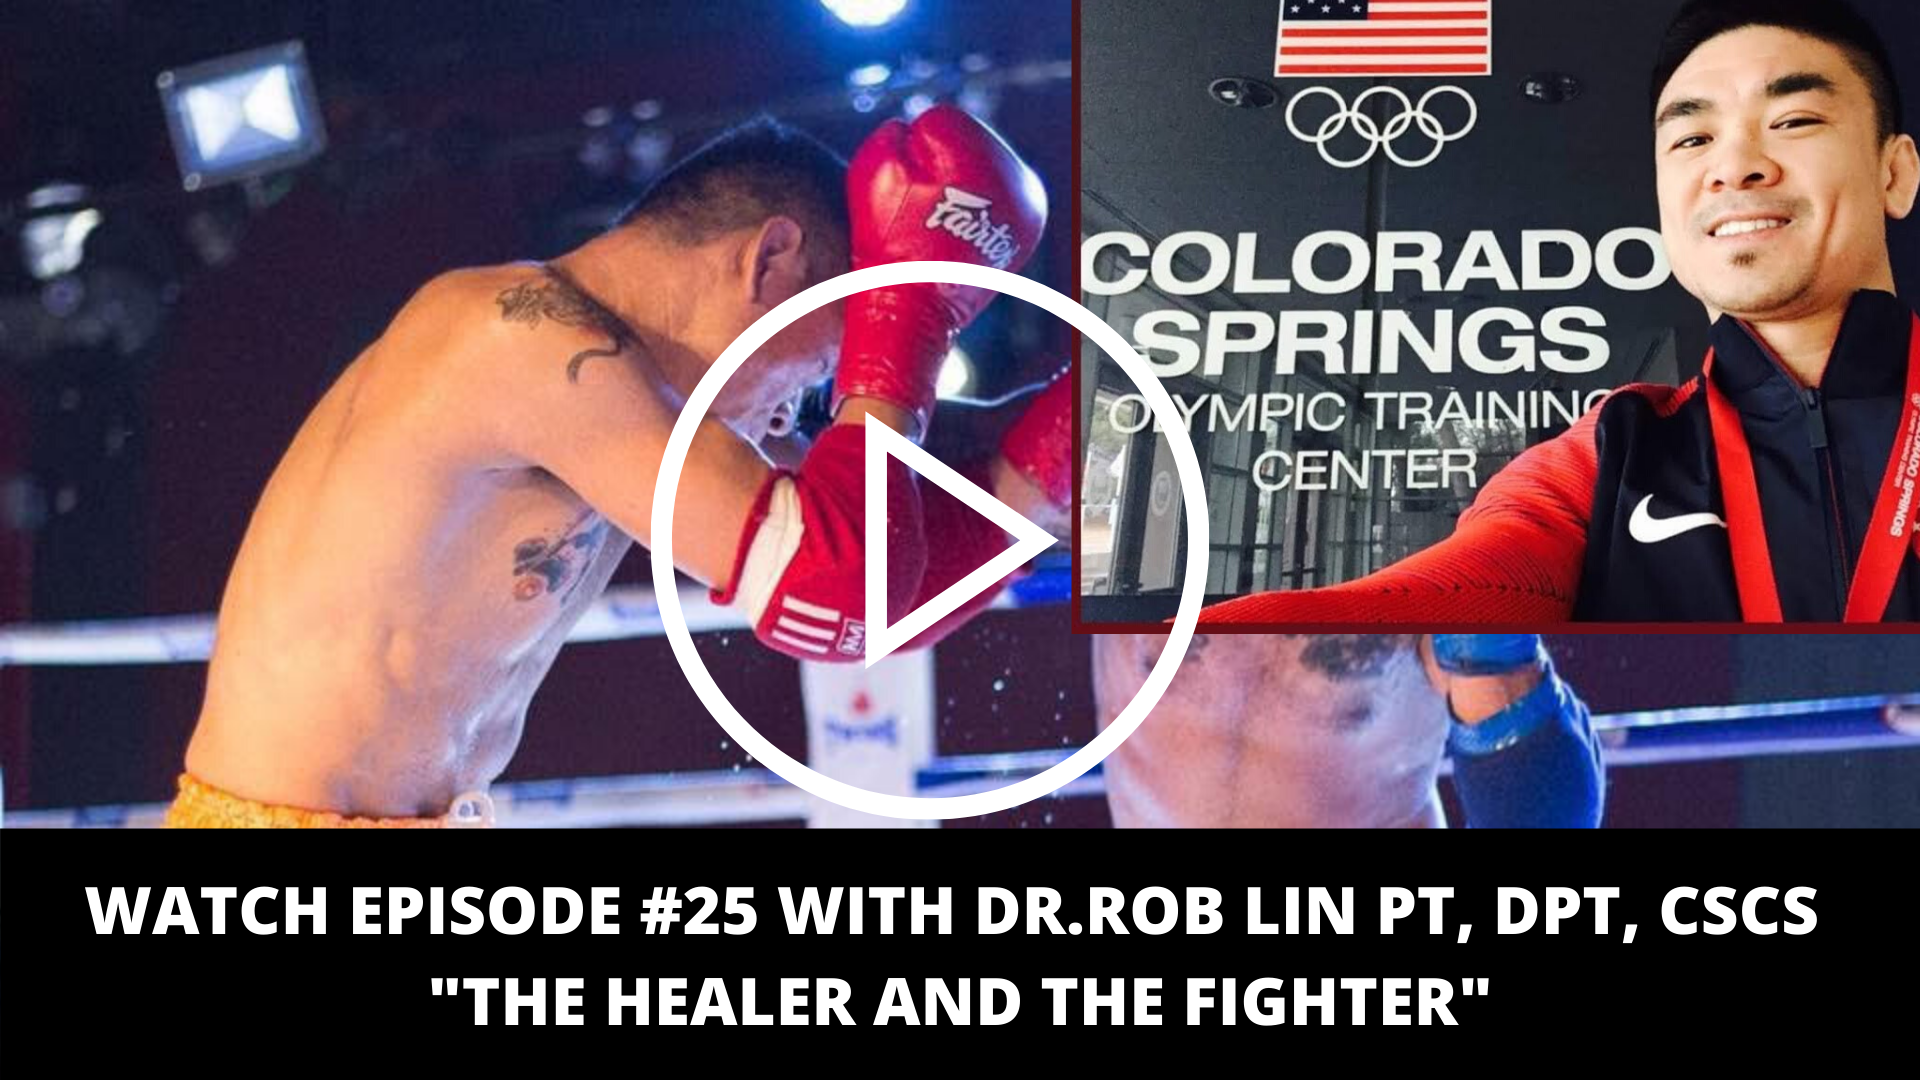 EPISODE #25 WITH DR.ROB LIN PT, DPT, CSCS THE HEALER AND THE FIGHTER